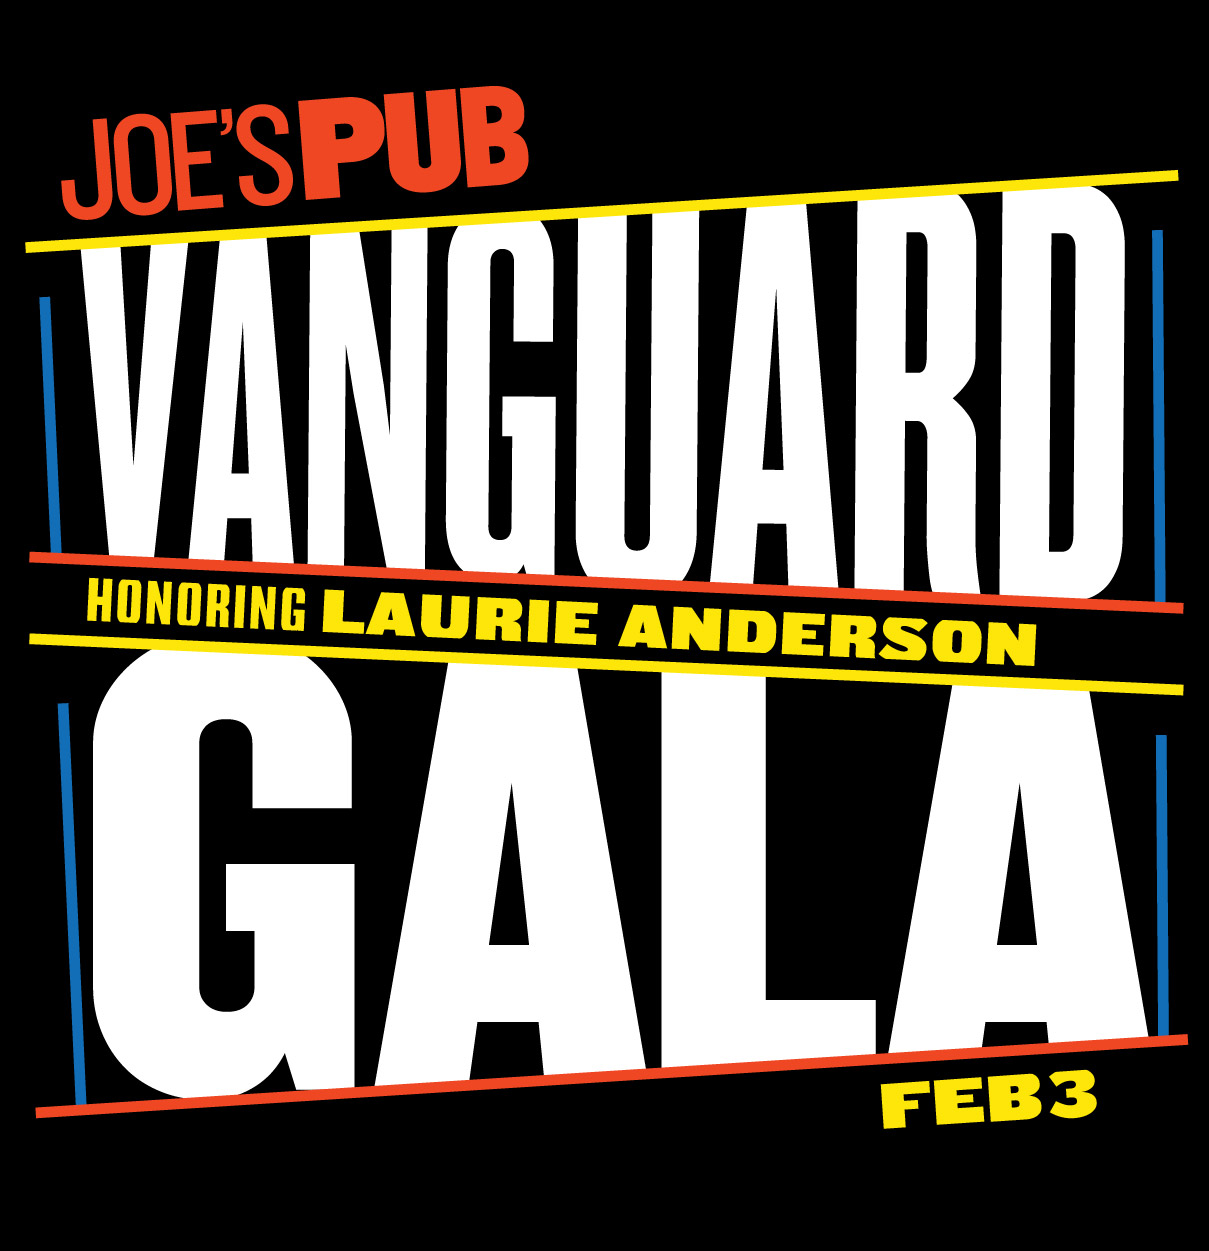 Joe's Pub Vanguard Gala: Feb 3. Honoring Laurie Anderson